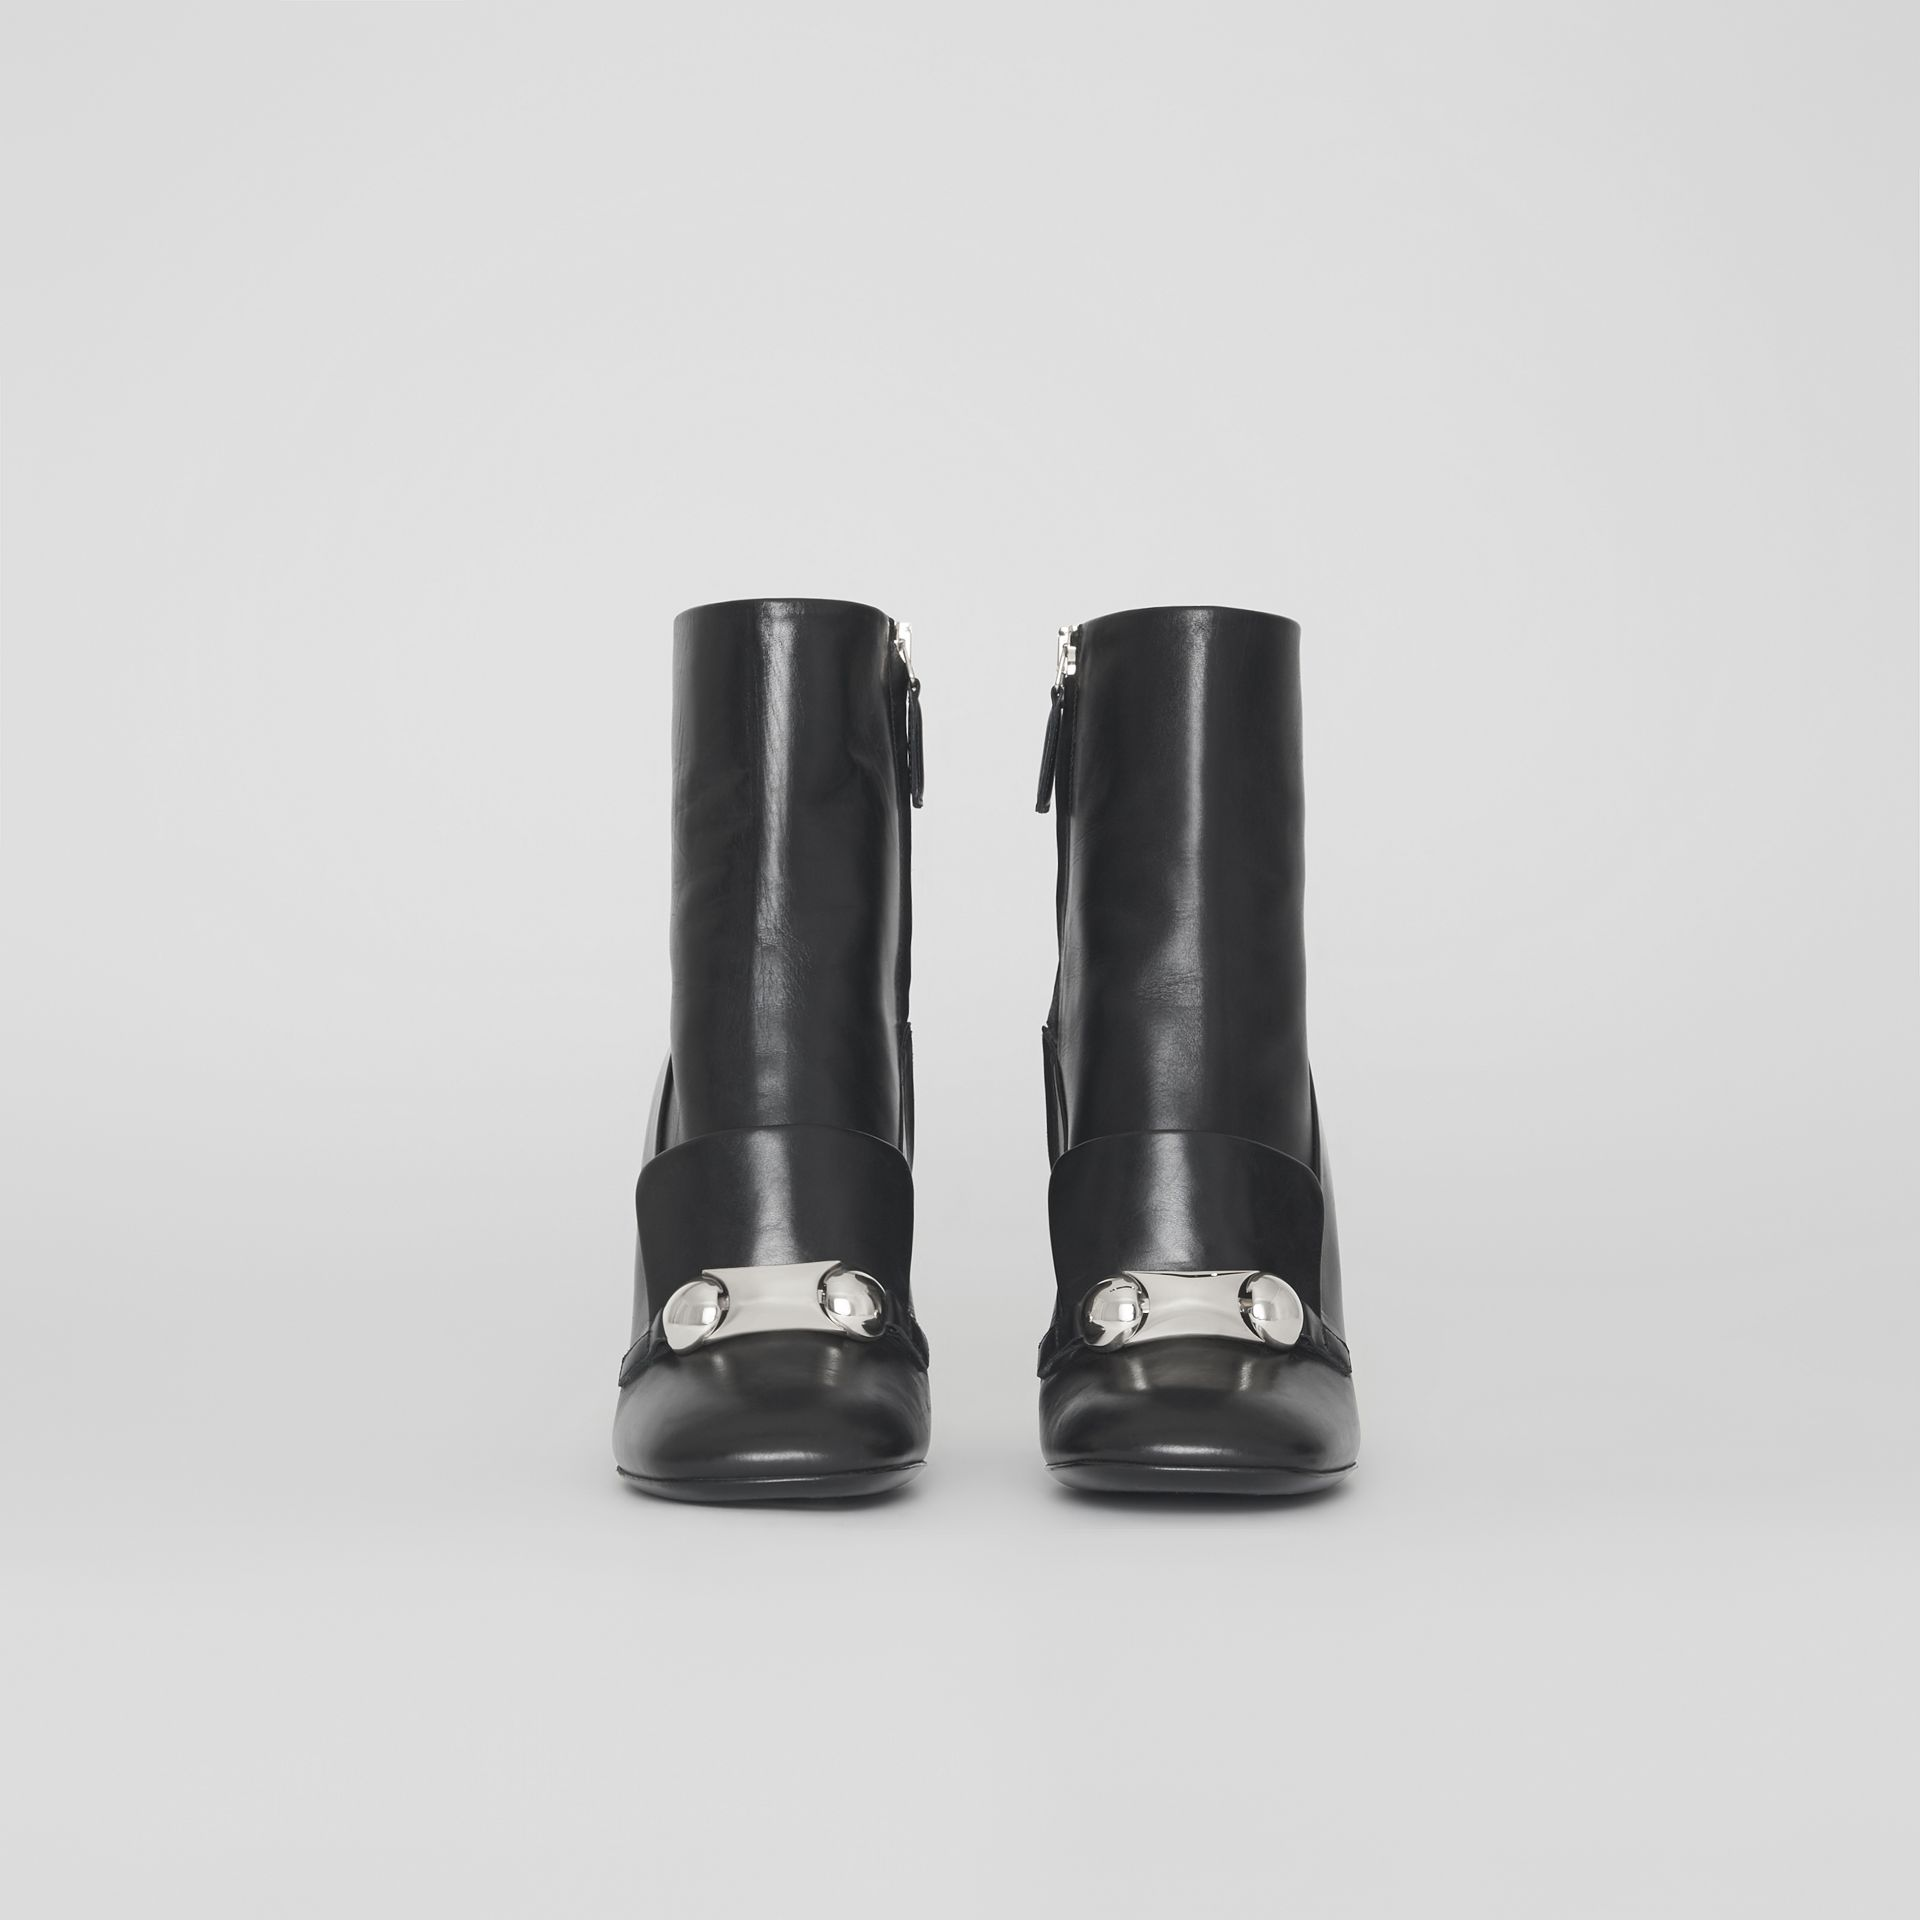 Bottines en cuir avec bride cloutée (Noir) - Femme | Burberry Canada - photo de la galerie 2